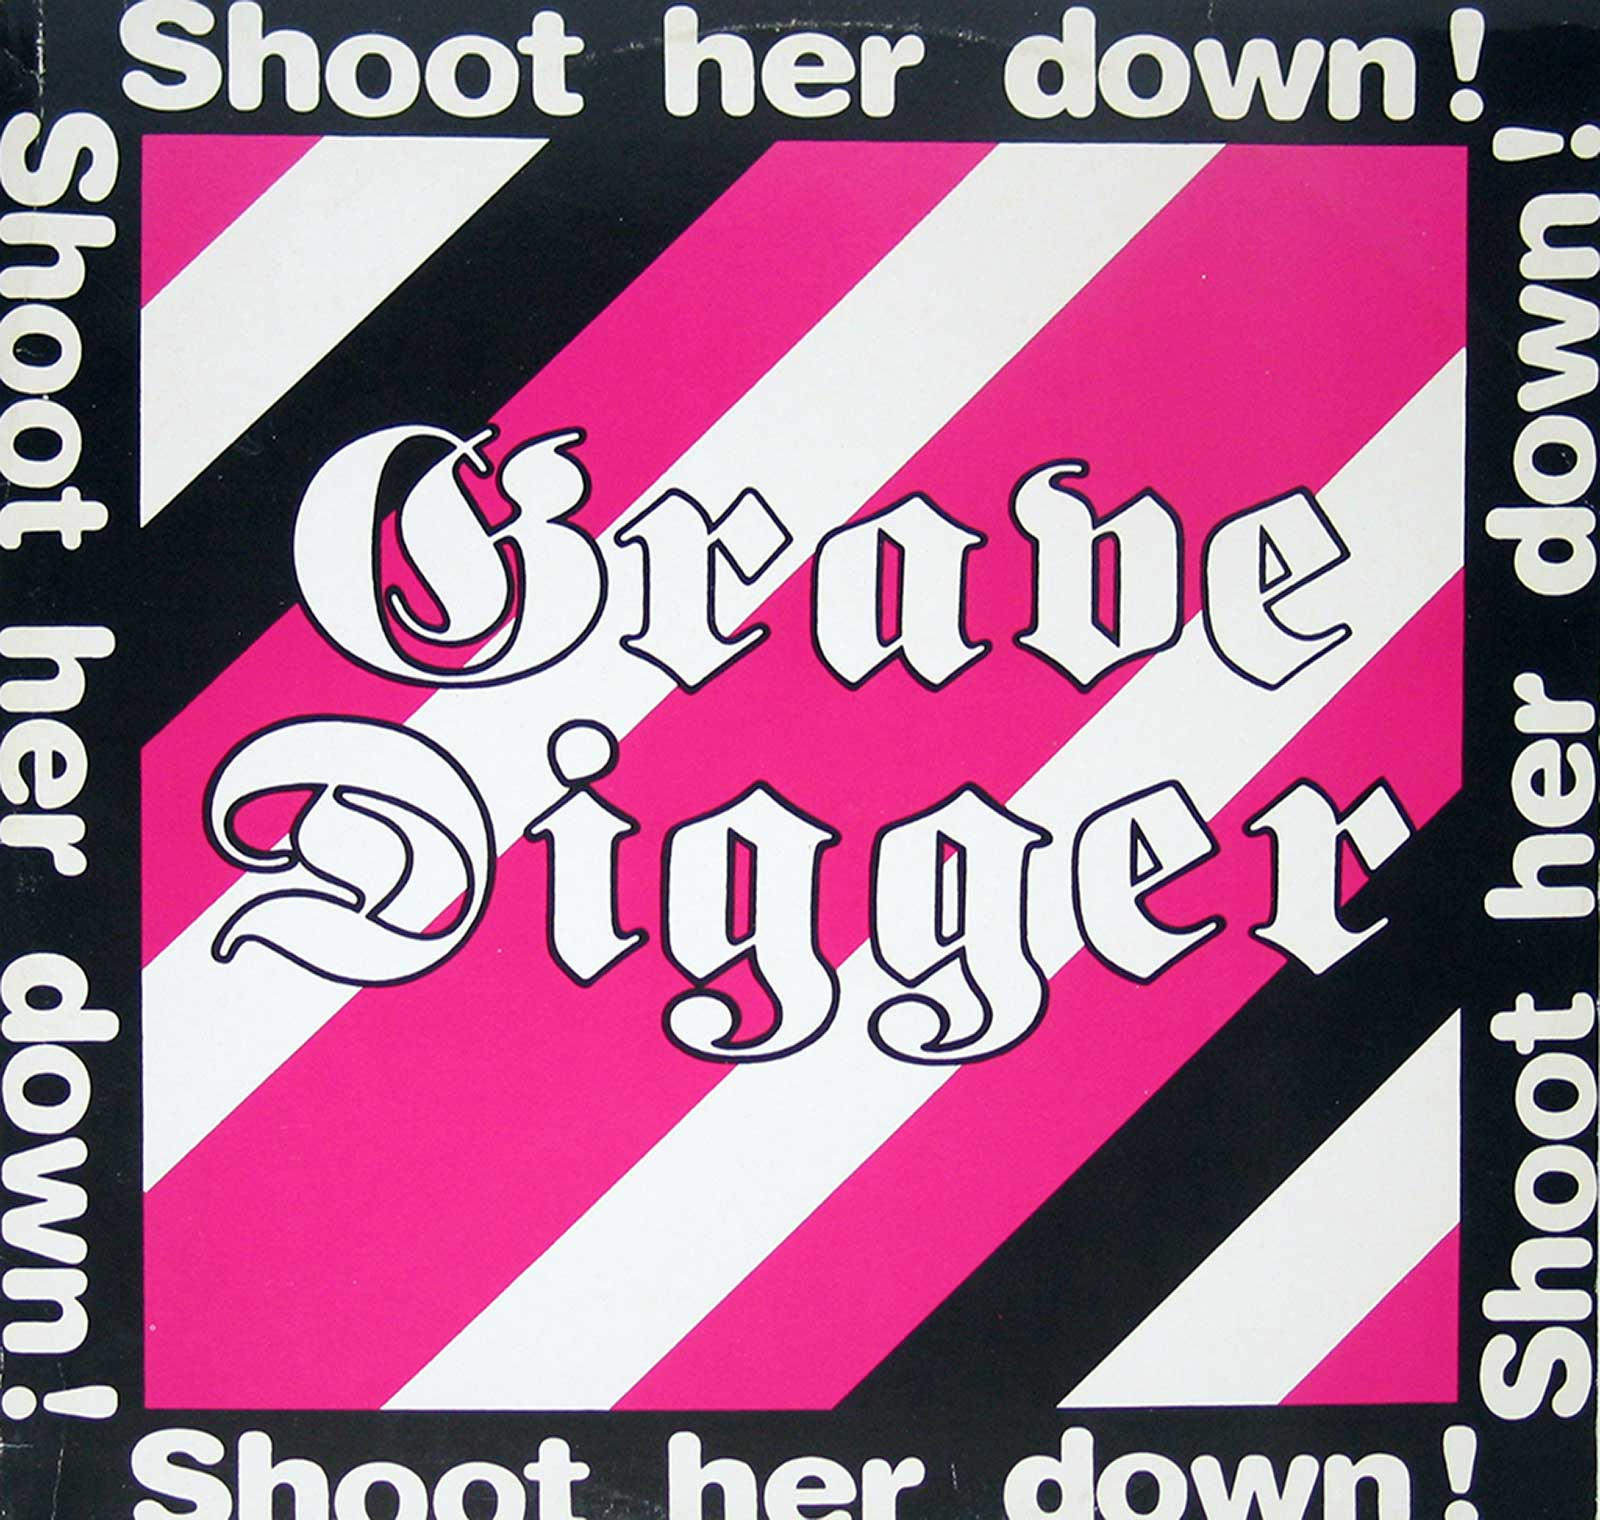 large photo of the album front cover of: Shoot Her Down by Grave Digger